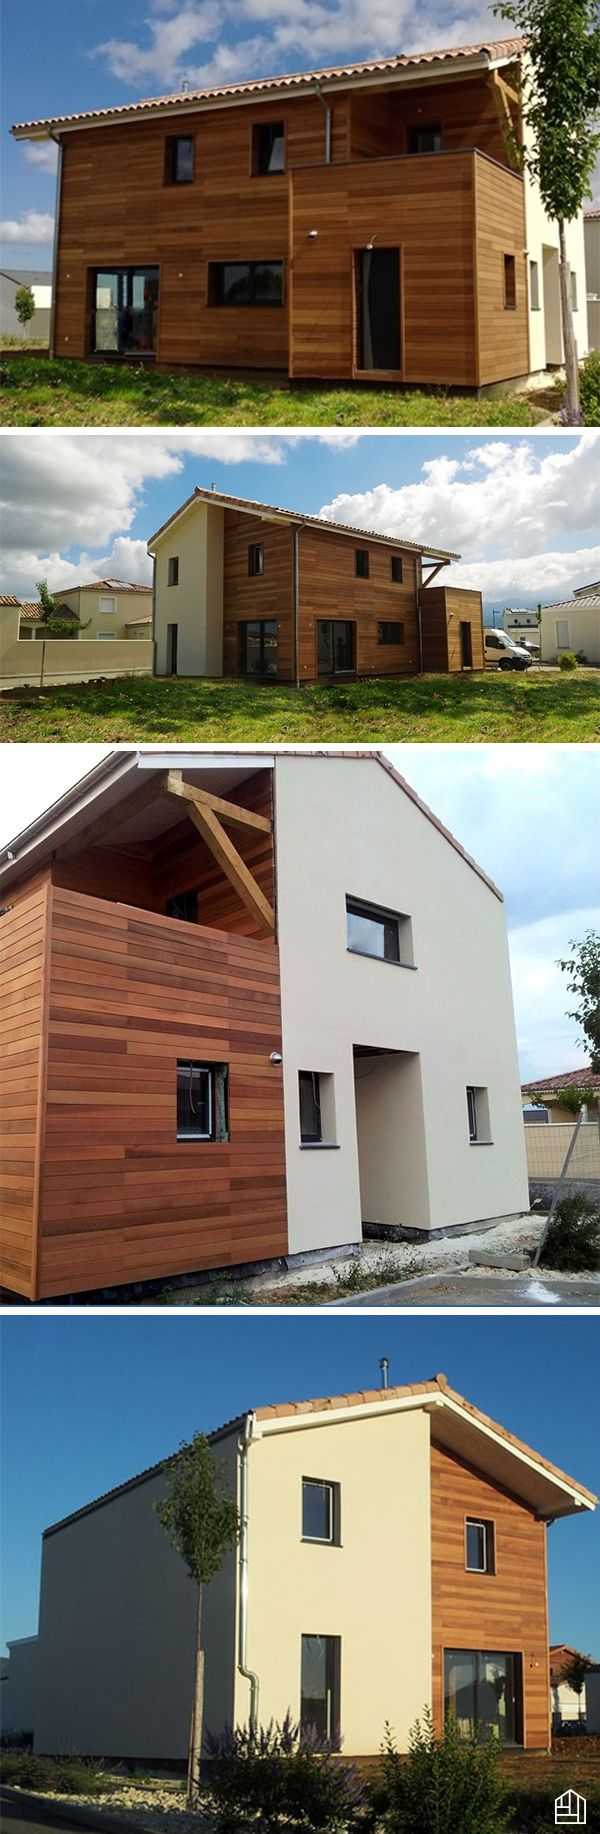 17 best ideas about red cedar on pinterest cedar - Bardage red cedar ...